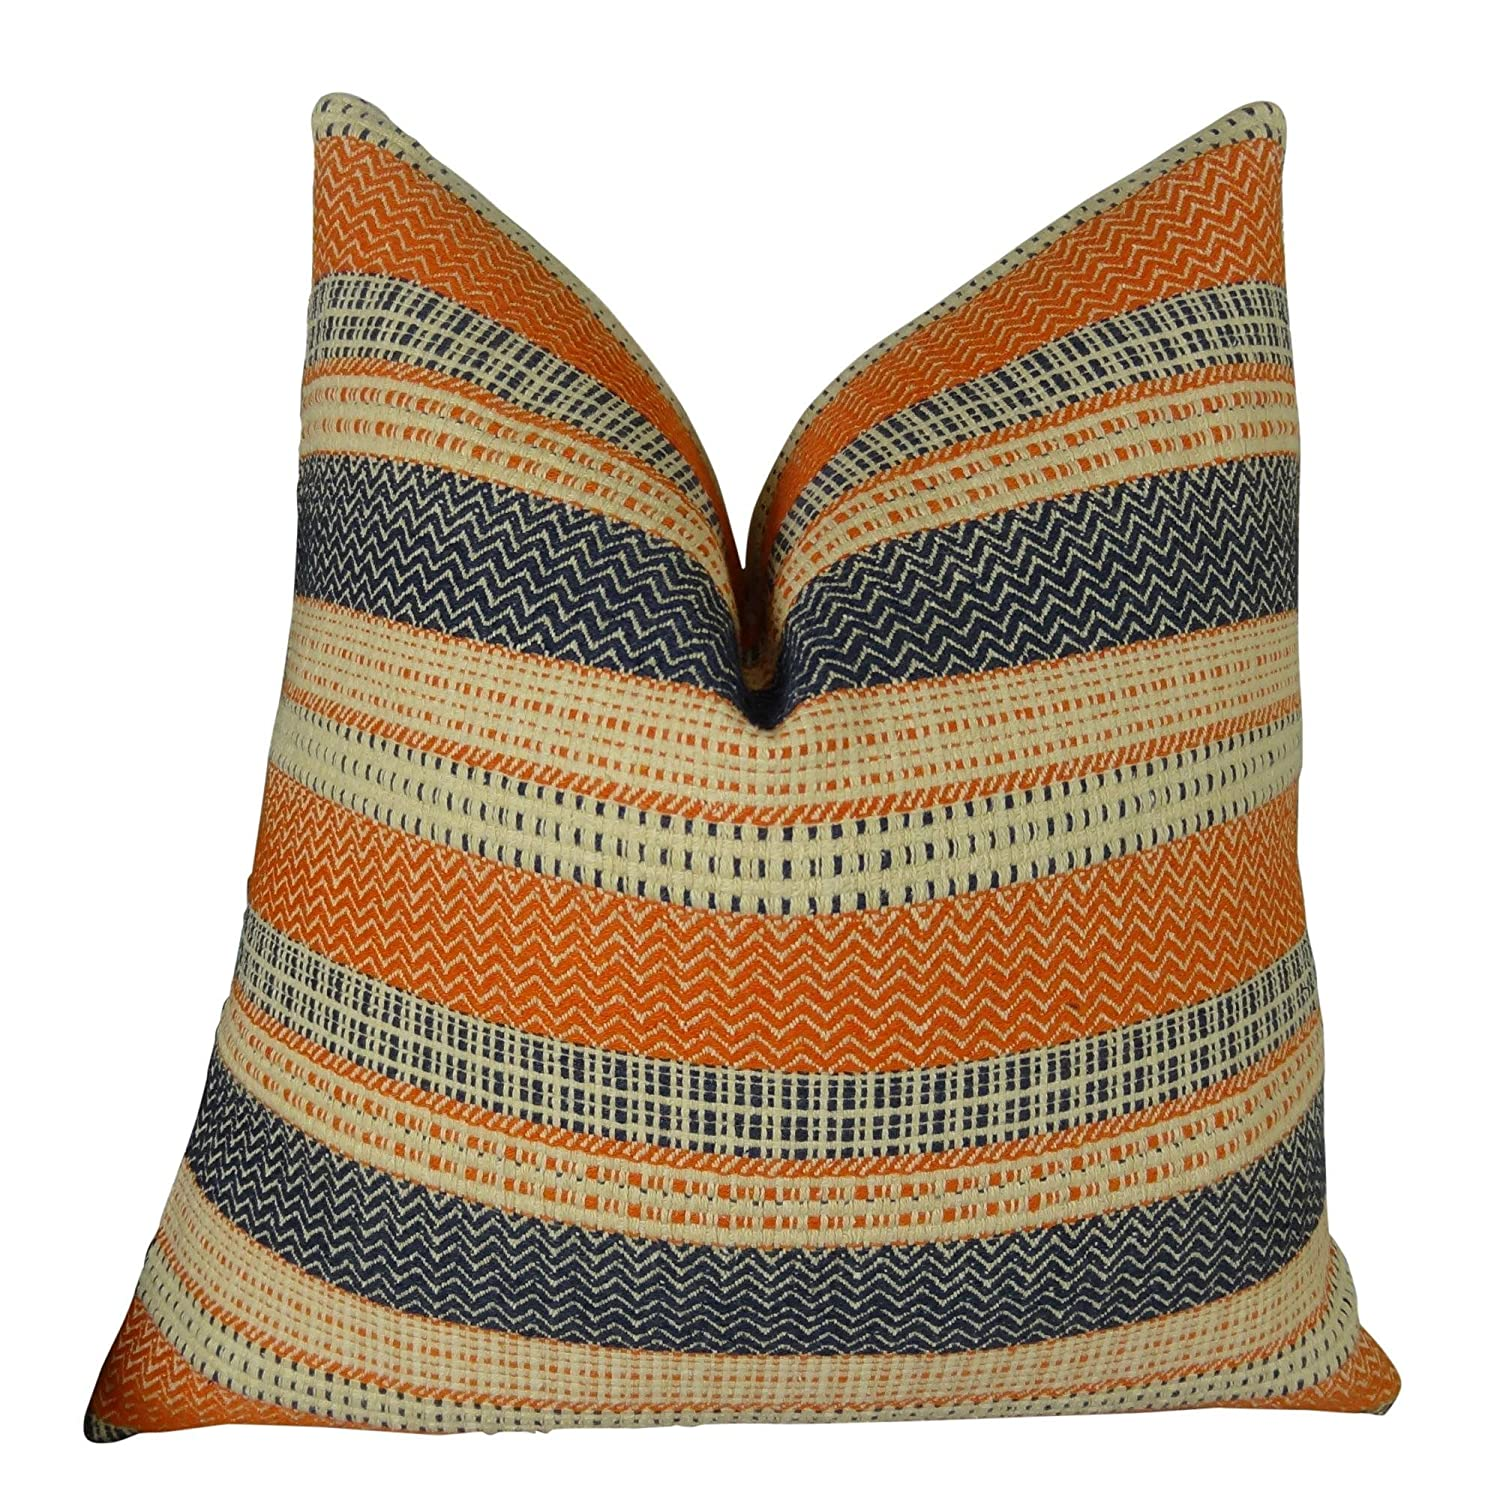 R .Double Sided 24\ Thomas Collection Handmade in USA Luxury Accent Pillow for Couch Sofa Bed, Made in USA Pillow Insert & Cover, orange Navy Cream Embroidered Pillow  11166